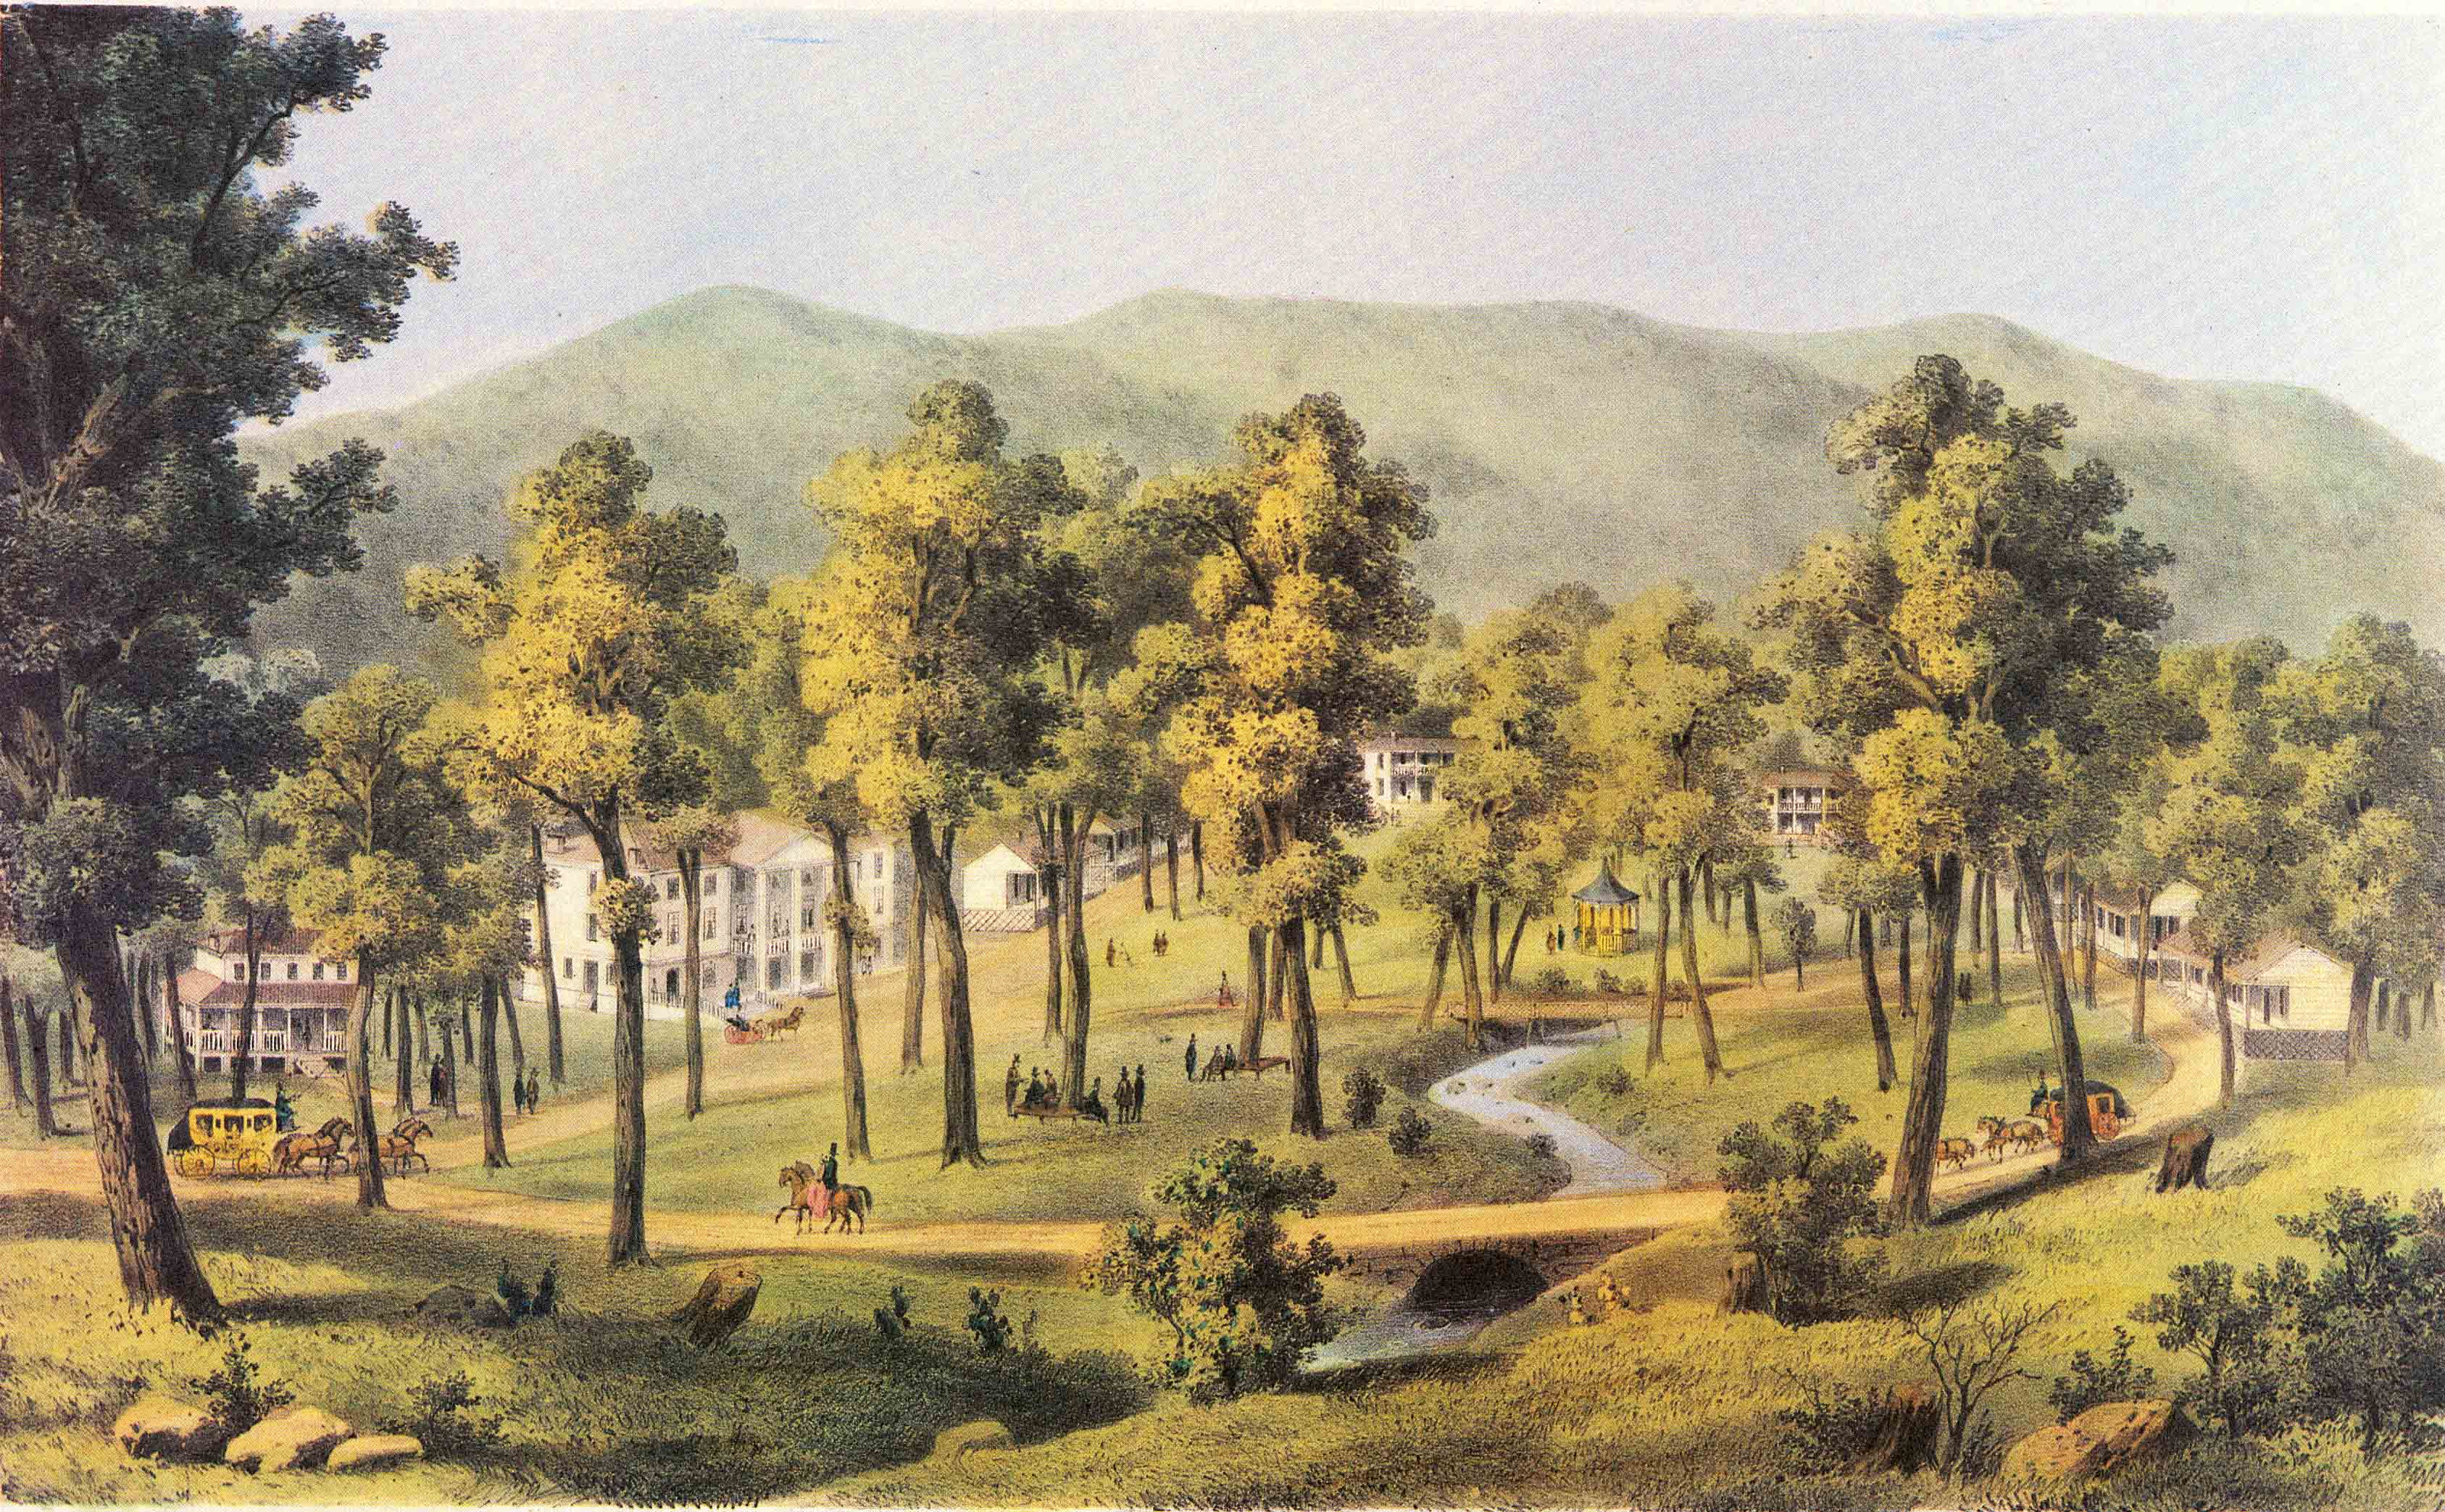 Album of Virginia rendering